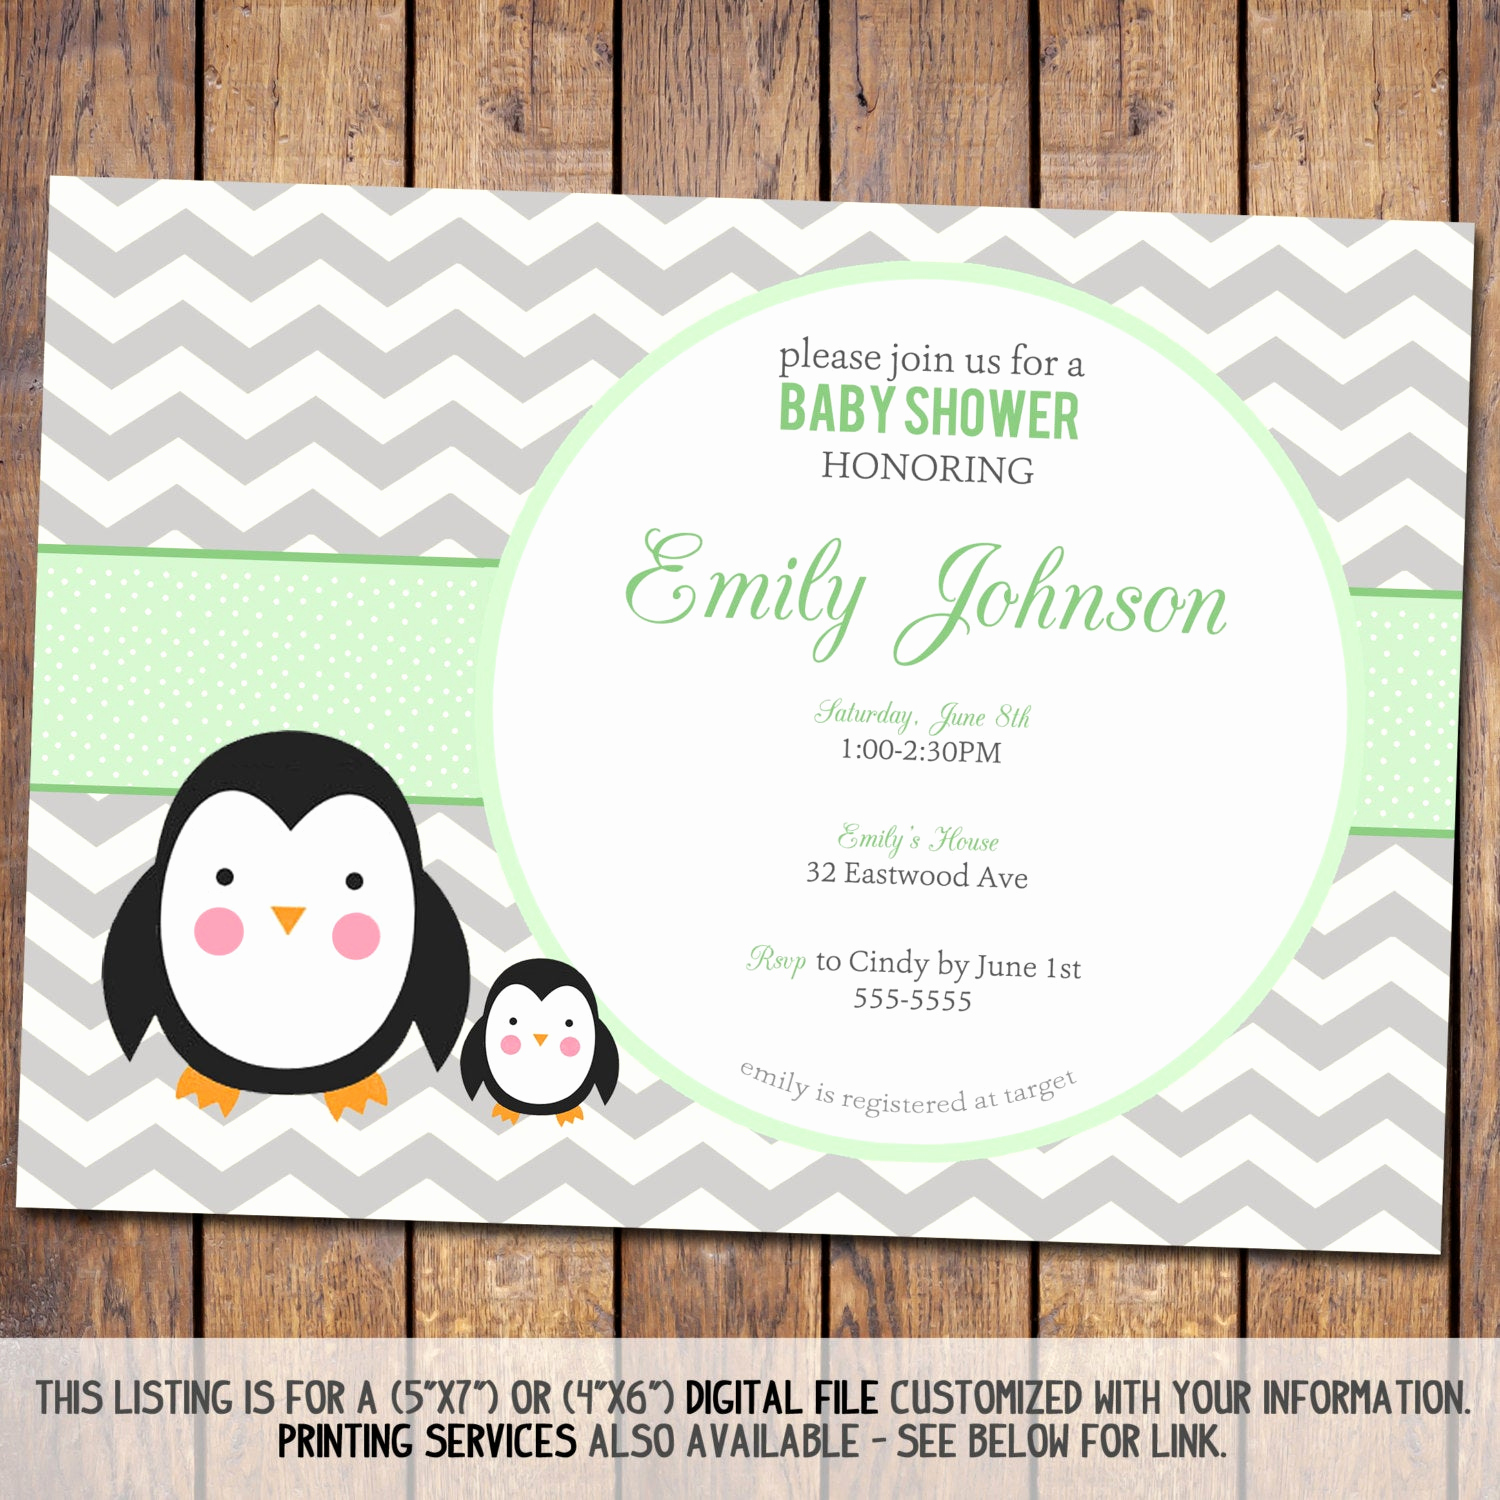 Baby Shower Pics for Invitation Awesome Chevron Baby Shower Invitation Penguin Baby Shower Invitation